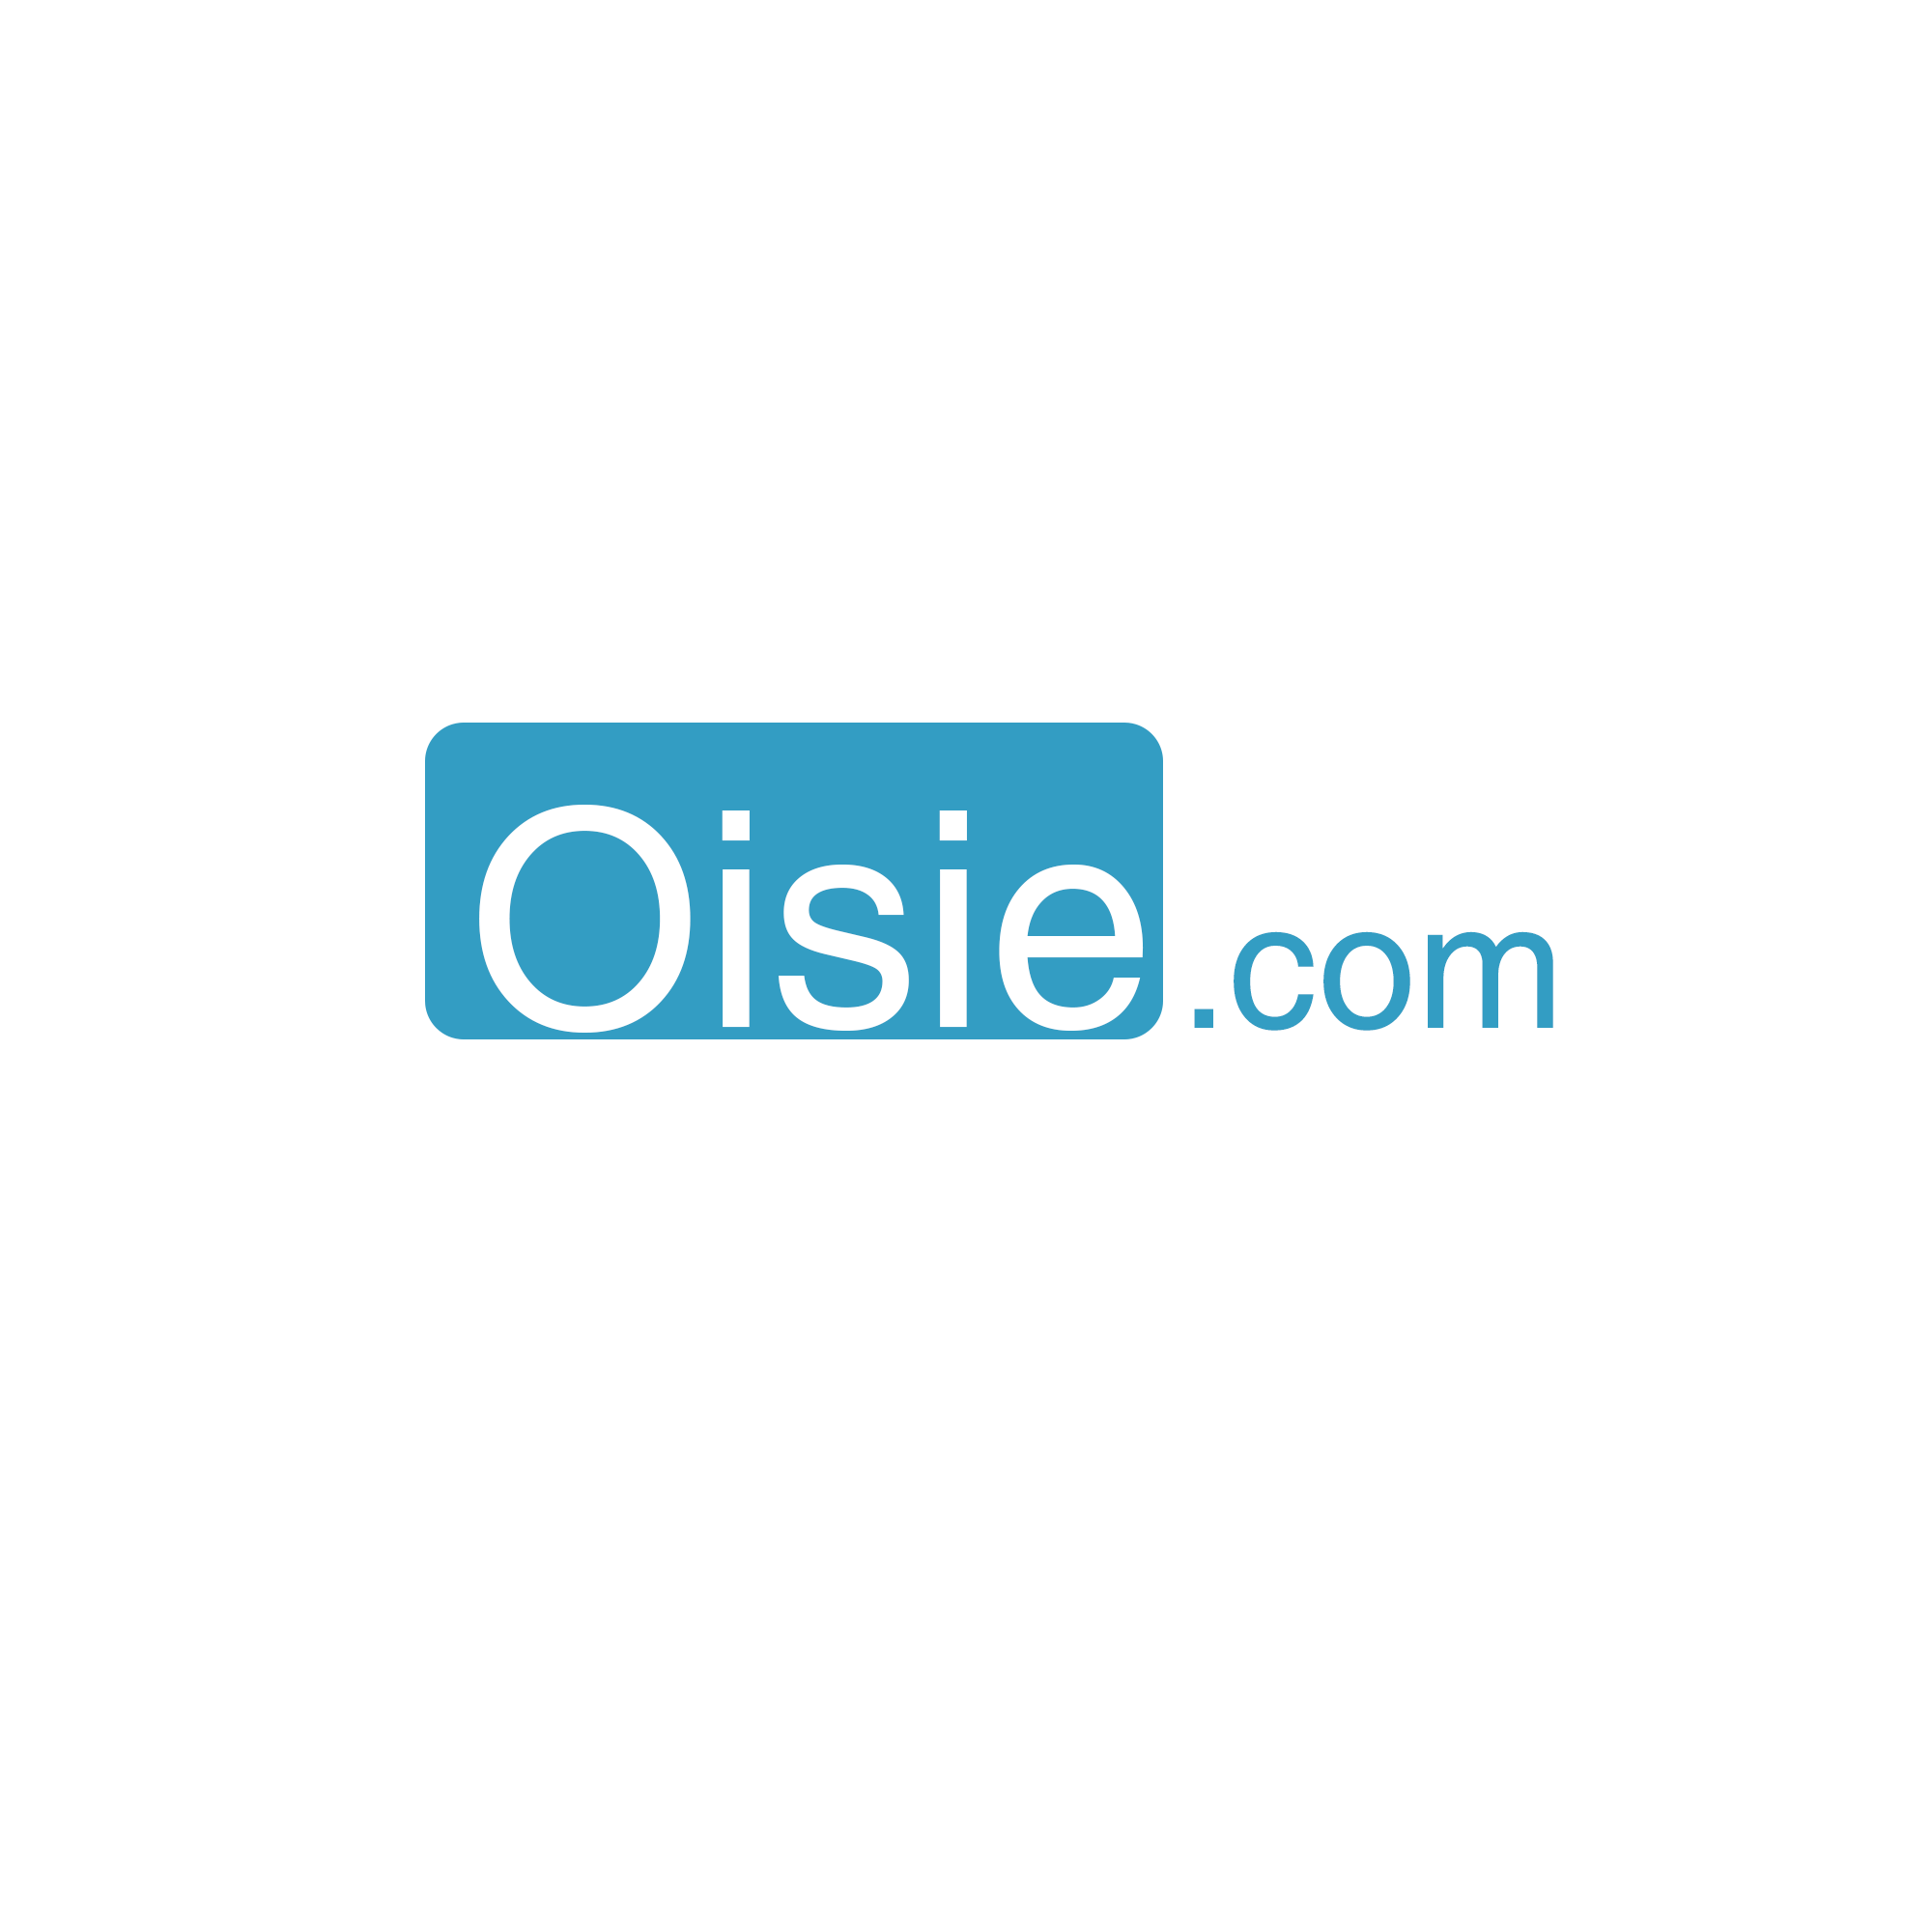 Oisie.com logo Large square. Inverted colors.